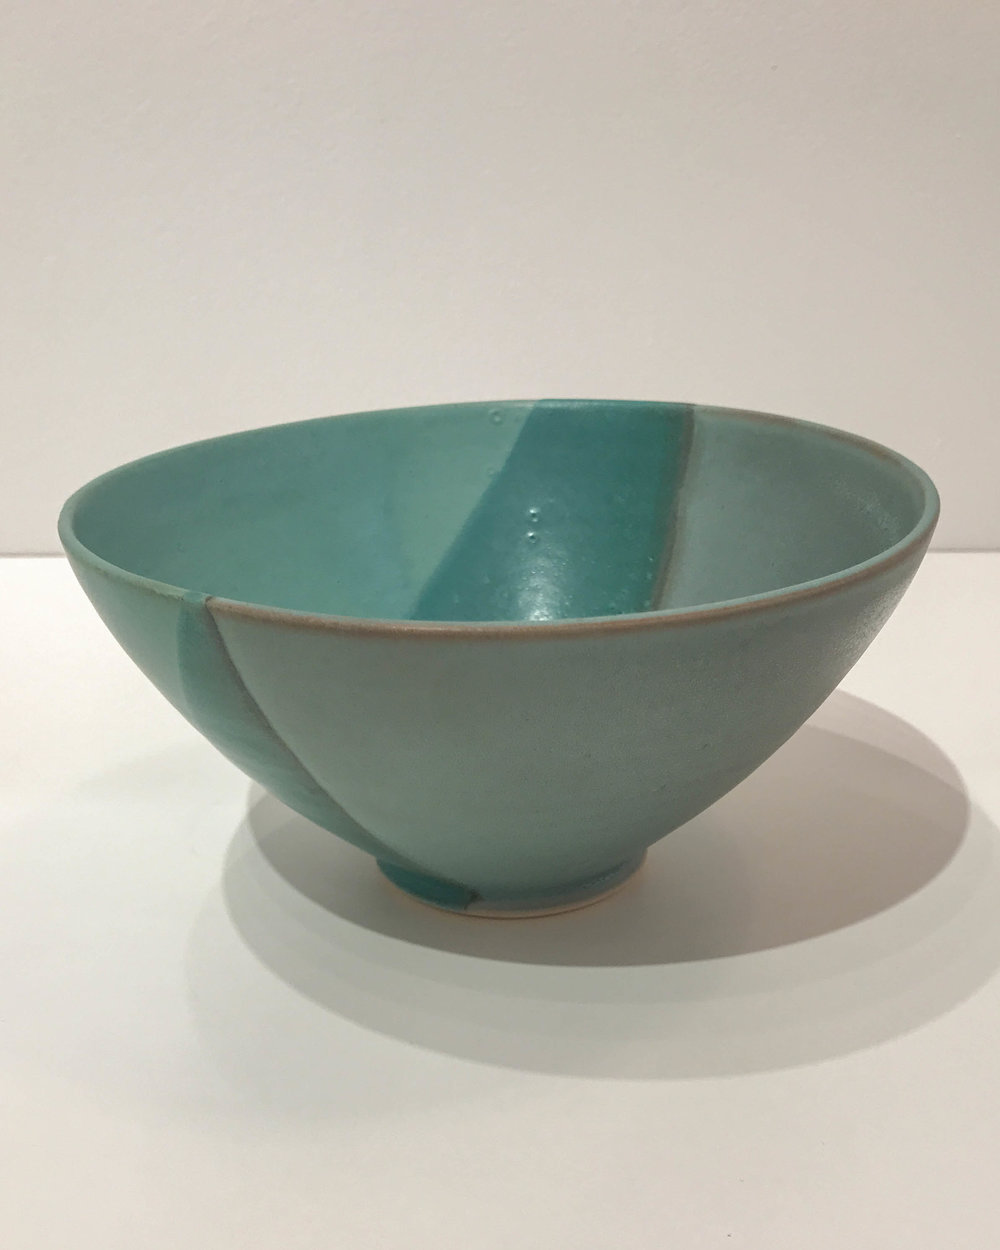 Large green bowl, hand-thrown stoneware, $48